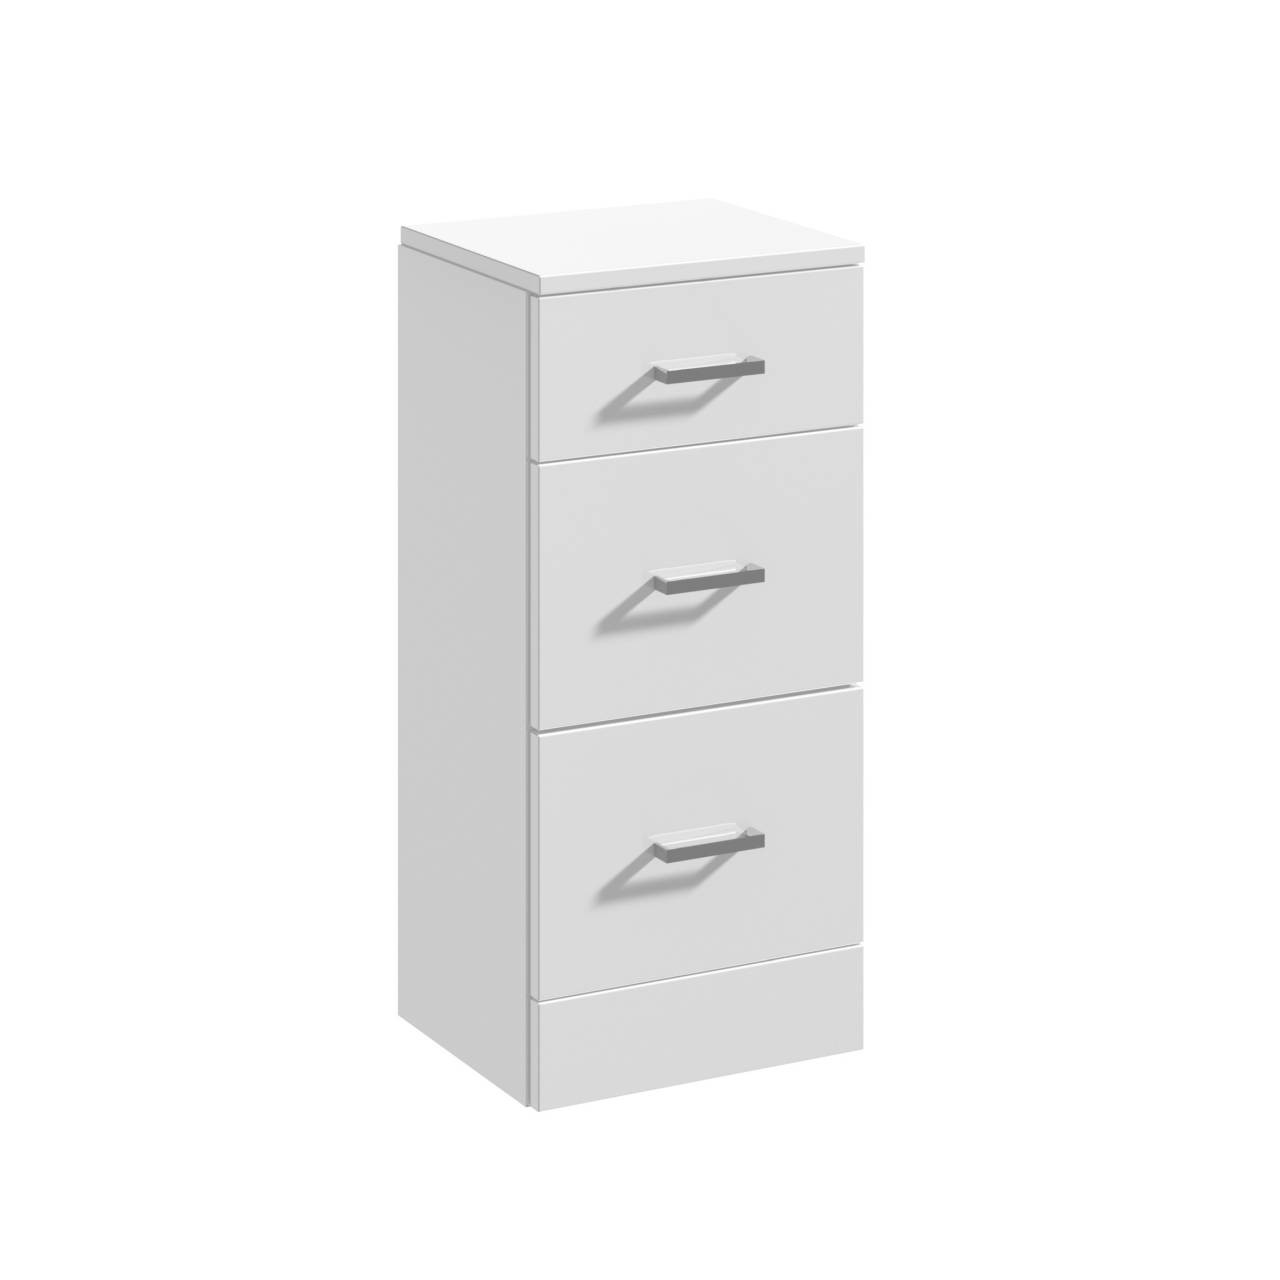 Premier Mayford Gloss White 350mm x 330mm 3 Drawer Storage Unit - PRC136